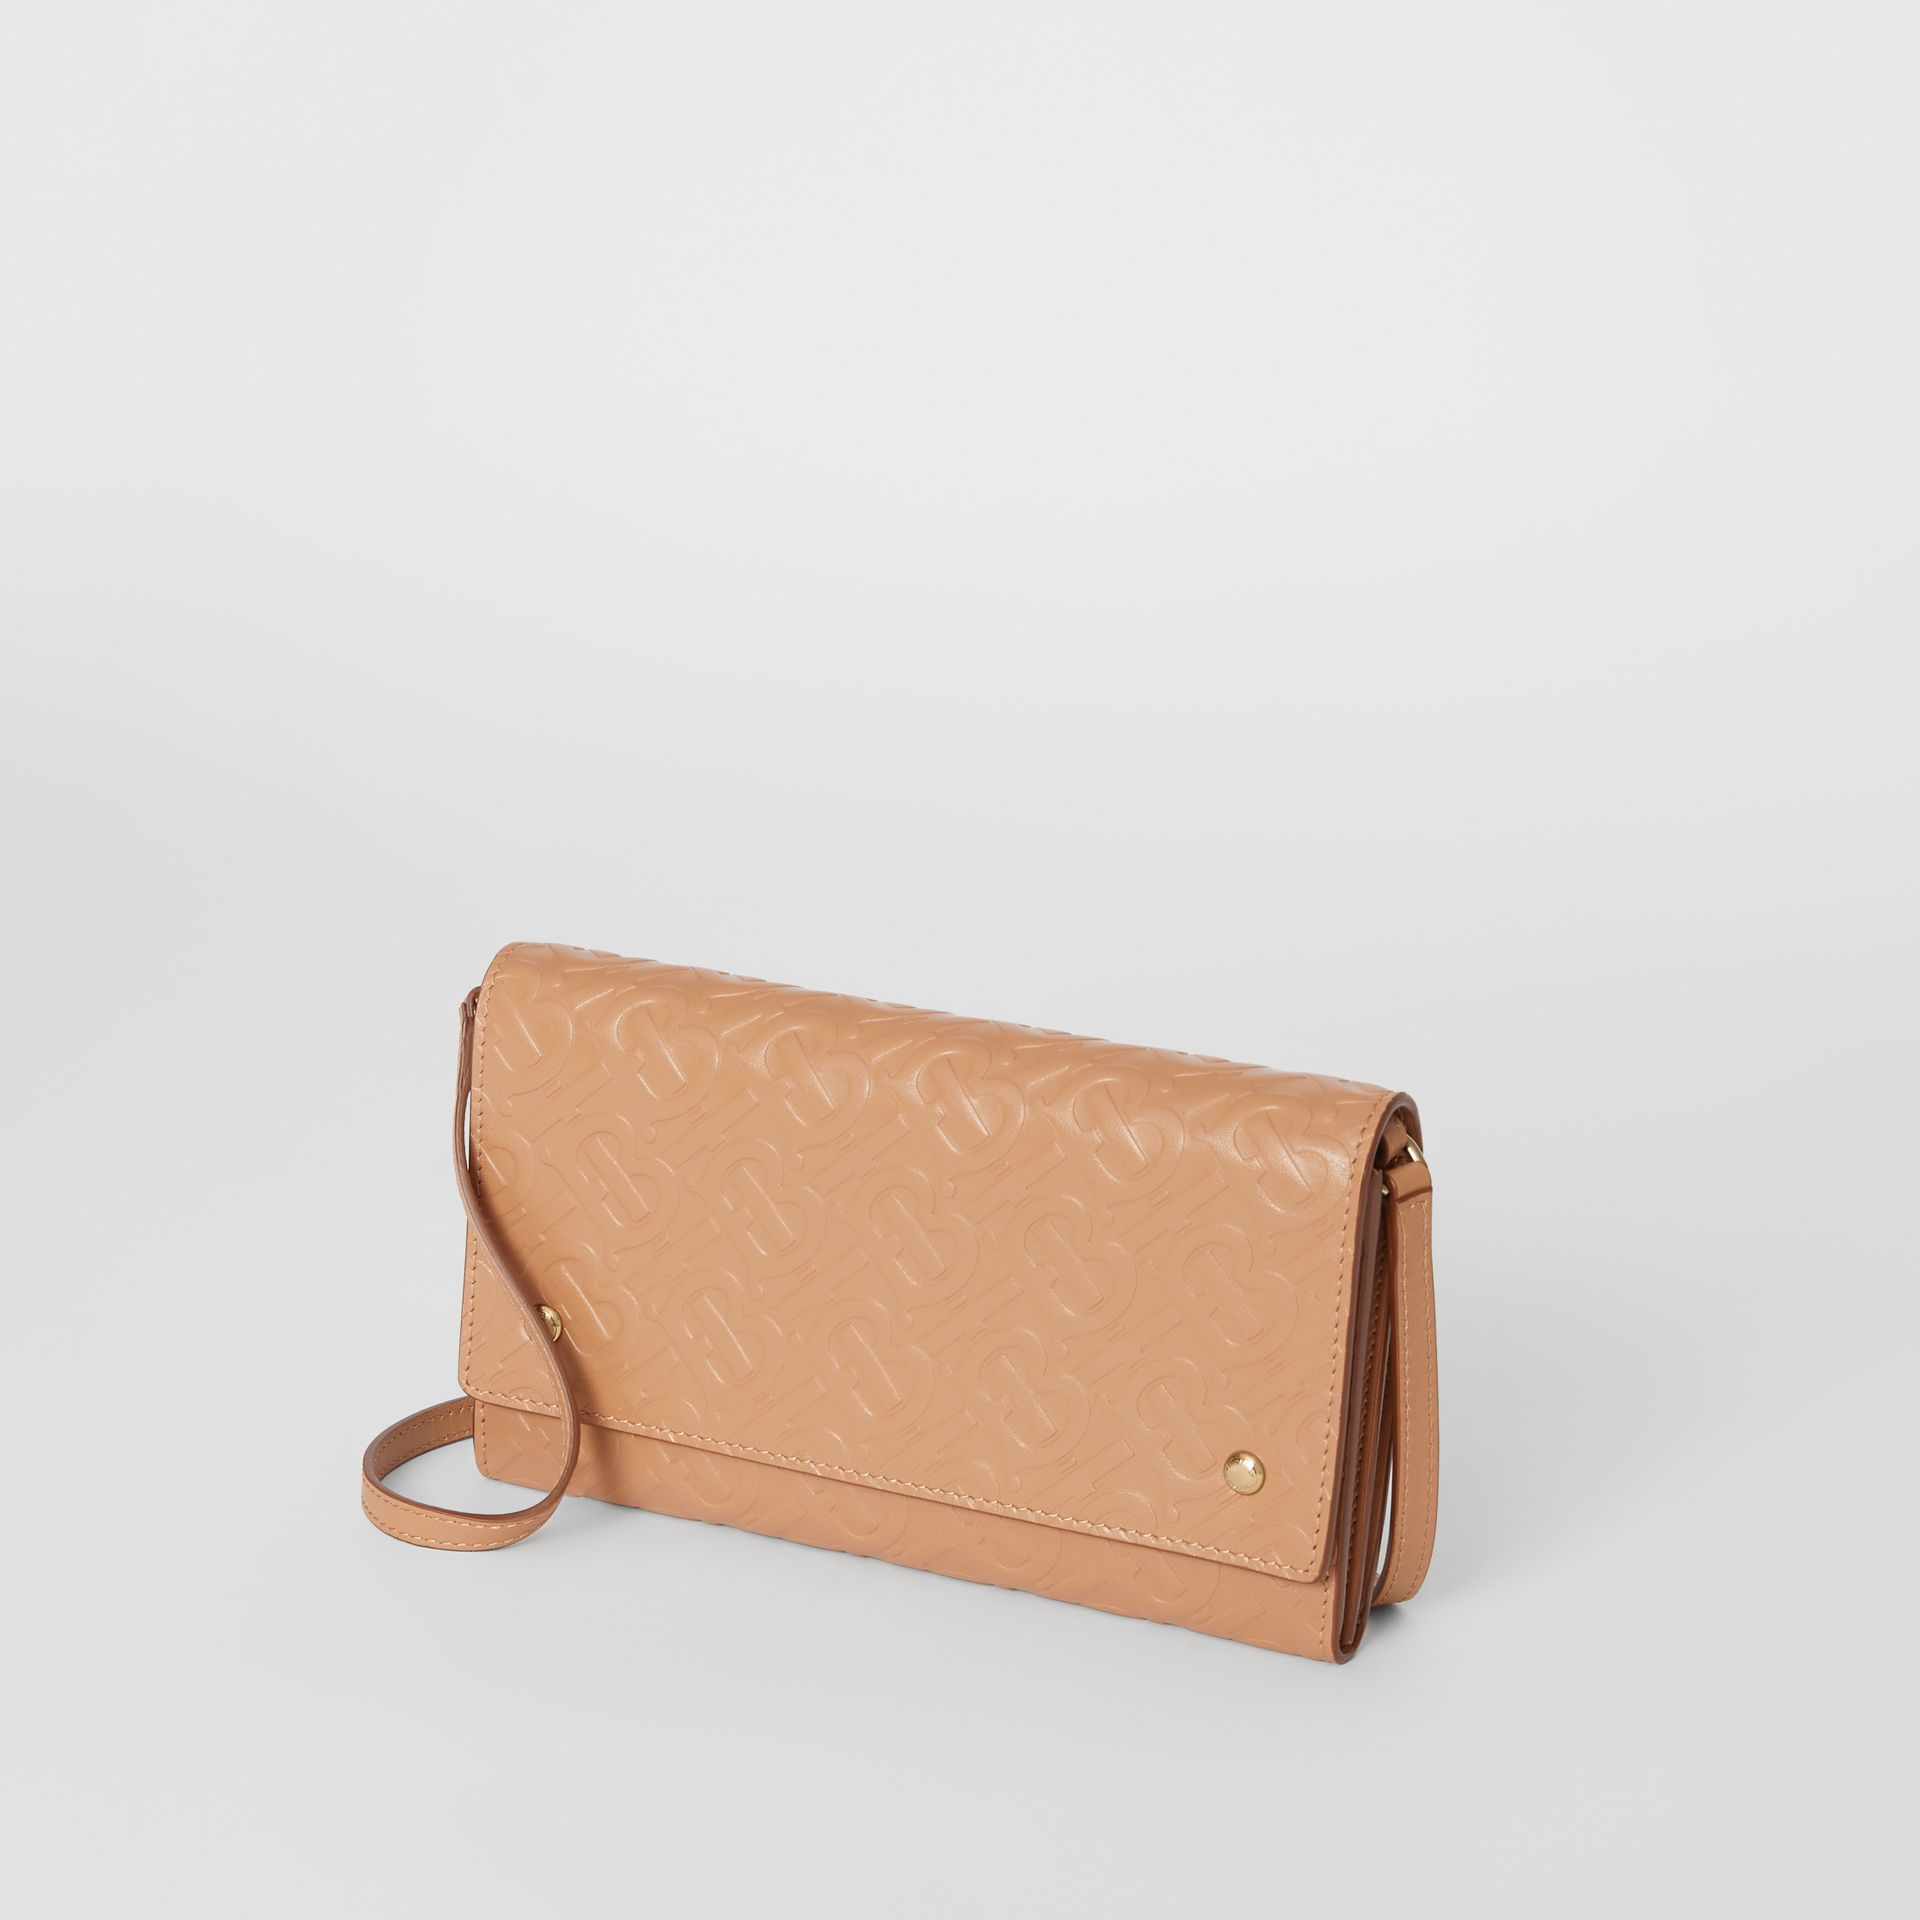 Monogram Leather Wallet with Detachable Strap in Light Camel - Women | Burberry United States - gallery image 4